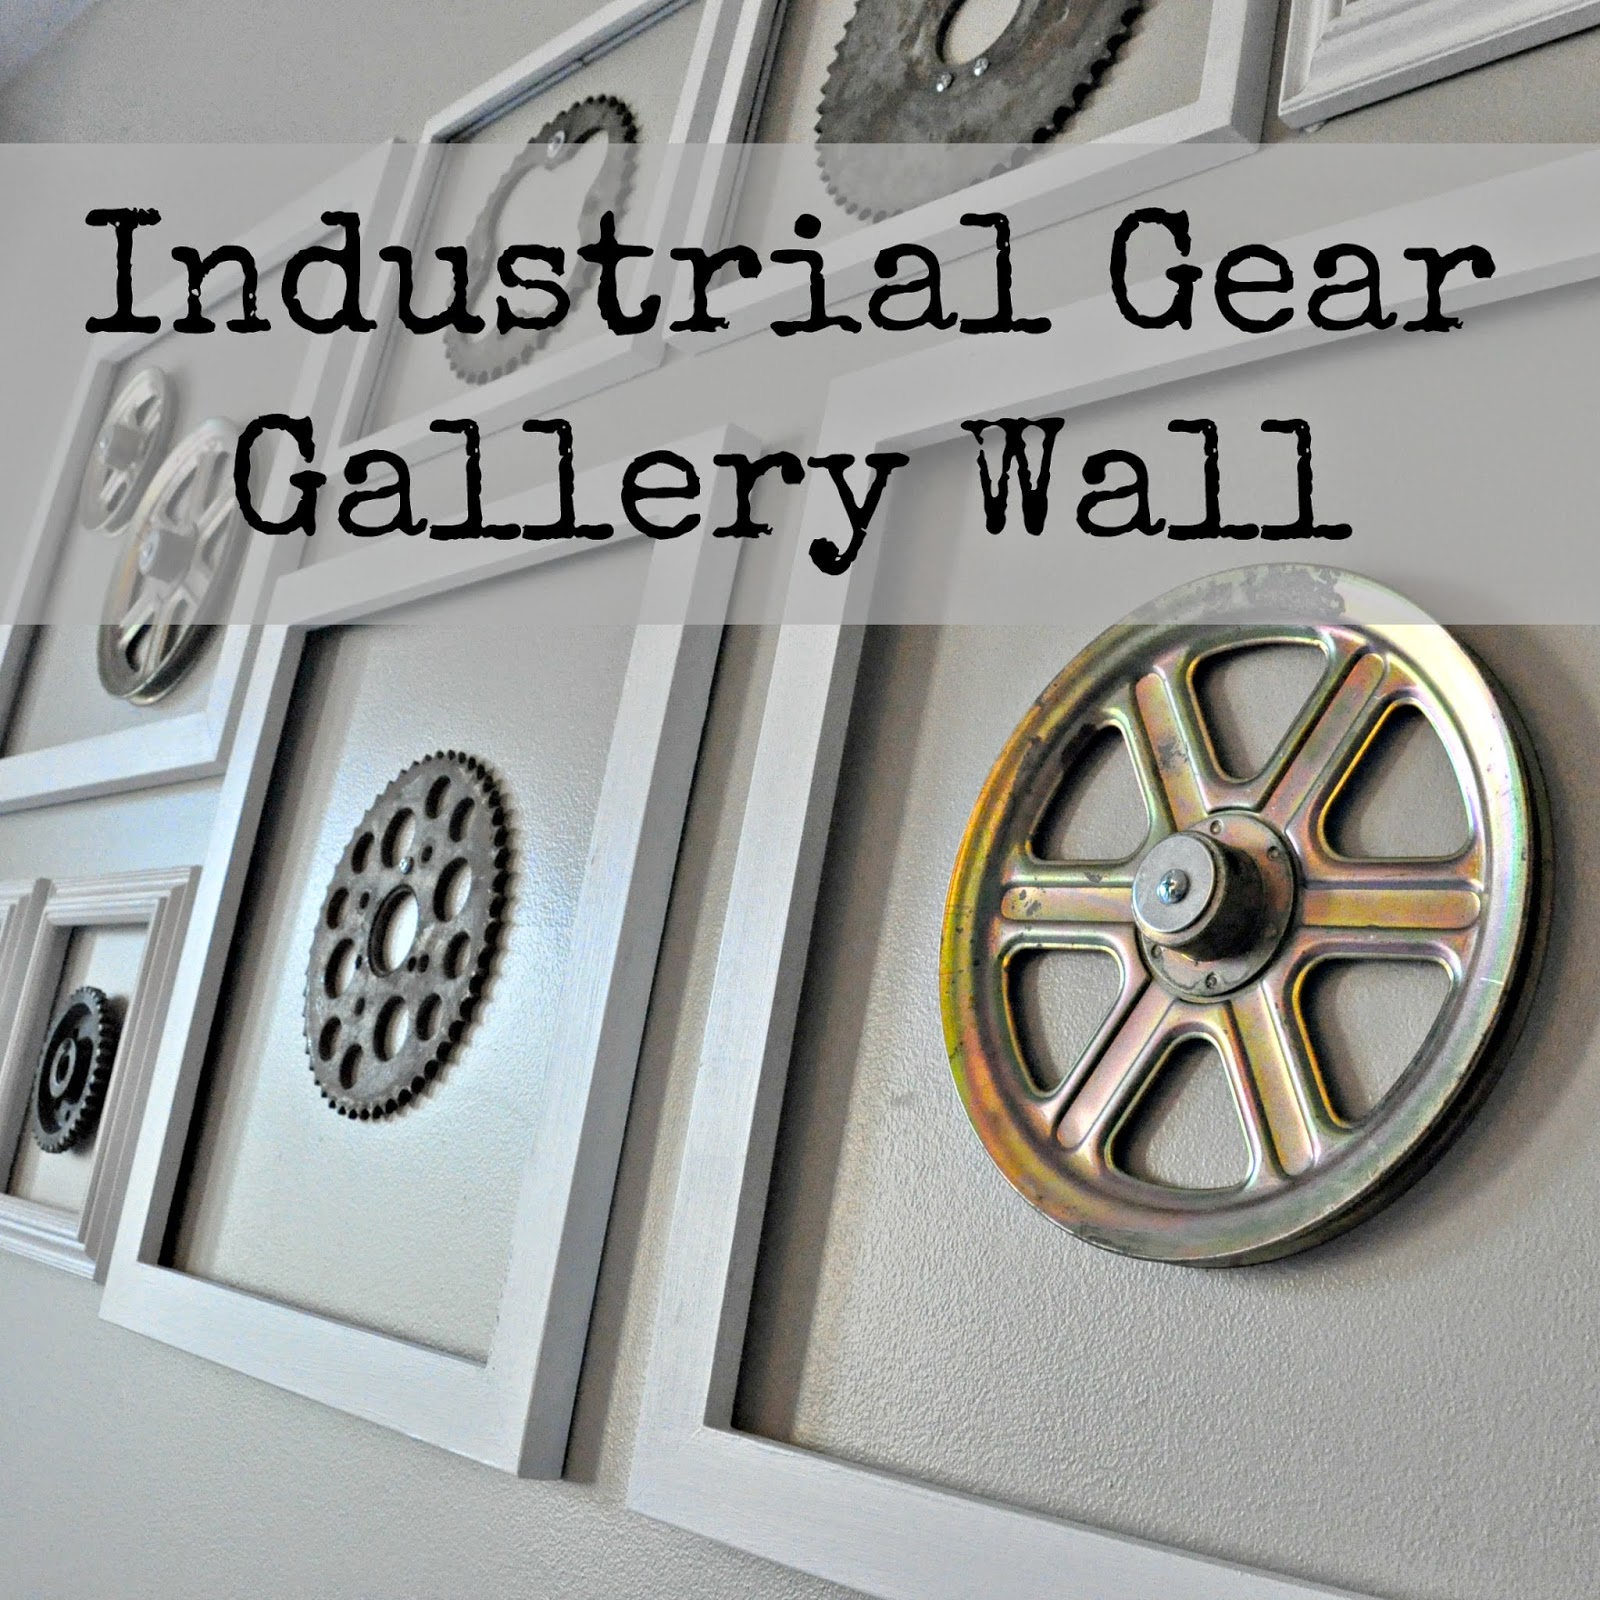 Industrial Gear Gallery Wall